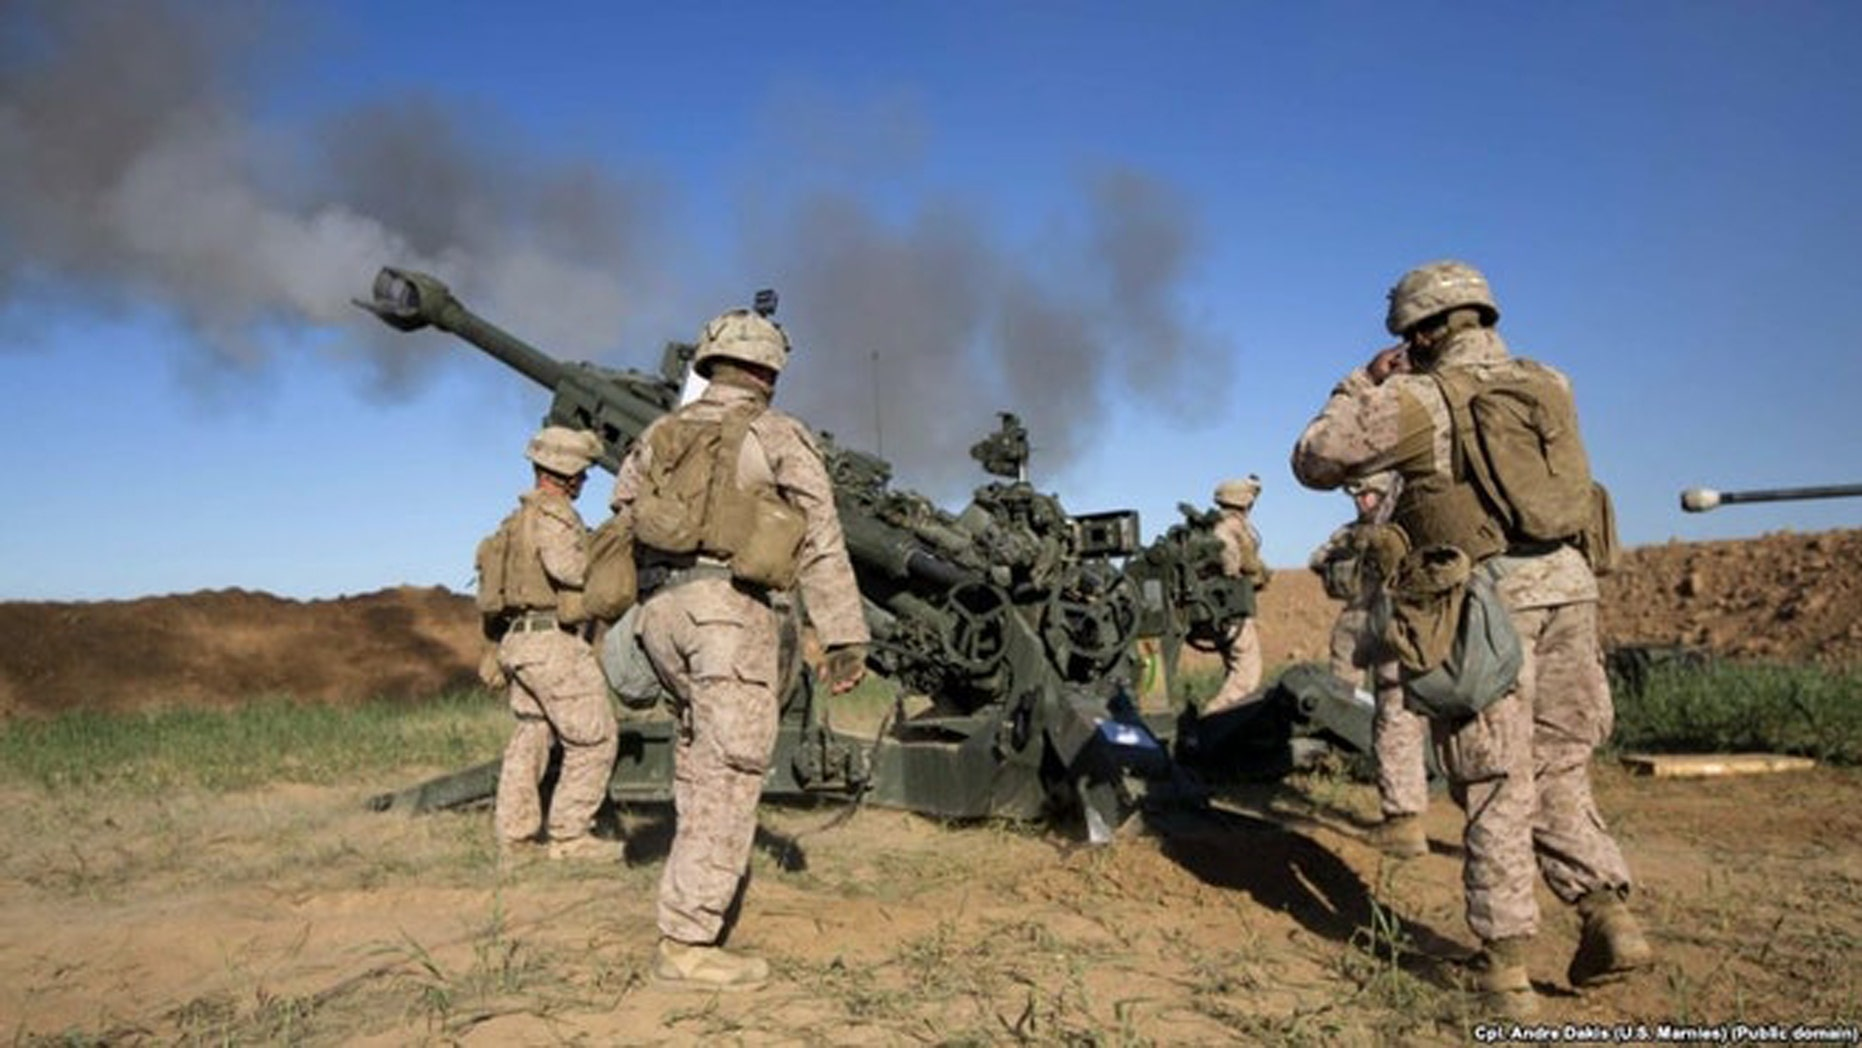 The U.S. Army is developing precision-guided 155mm rounds that are longer range and able to fire in GPS-denied war. (Credit: US Marine Corps)